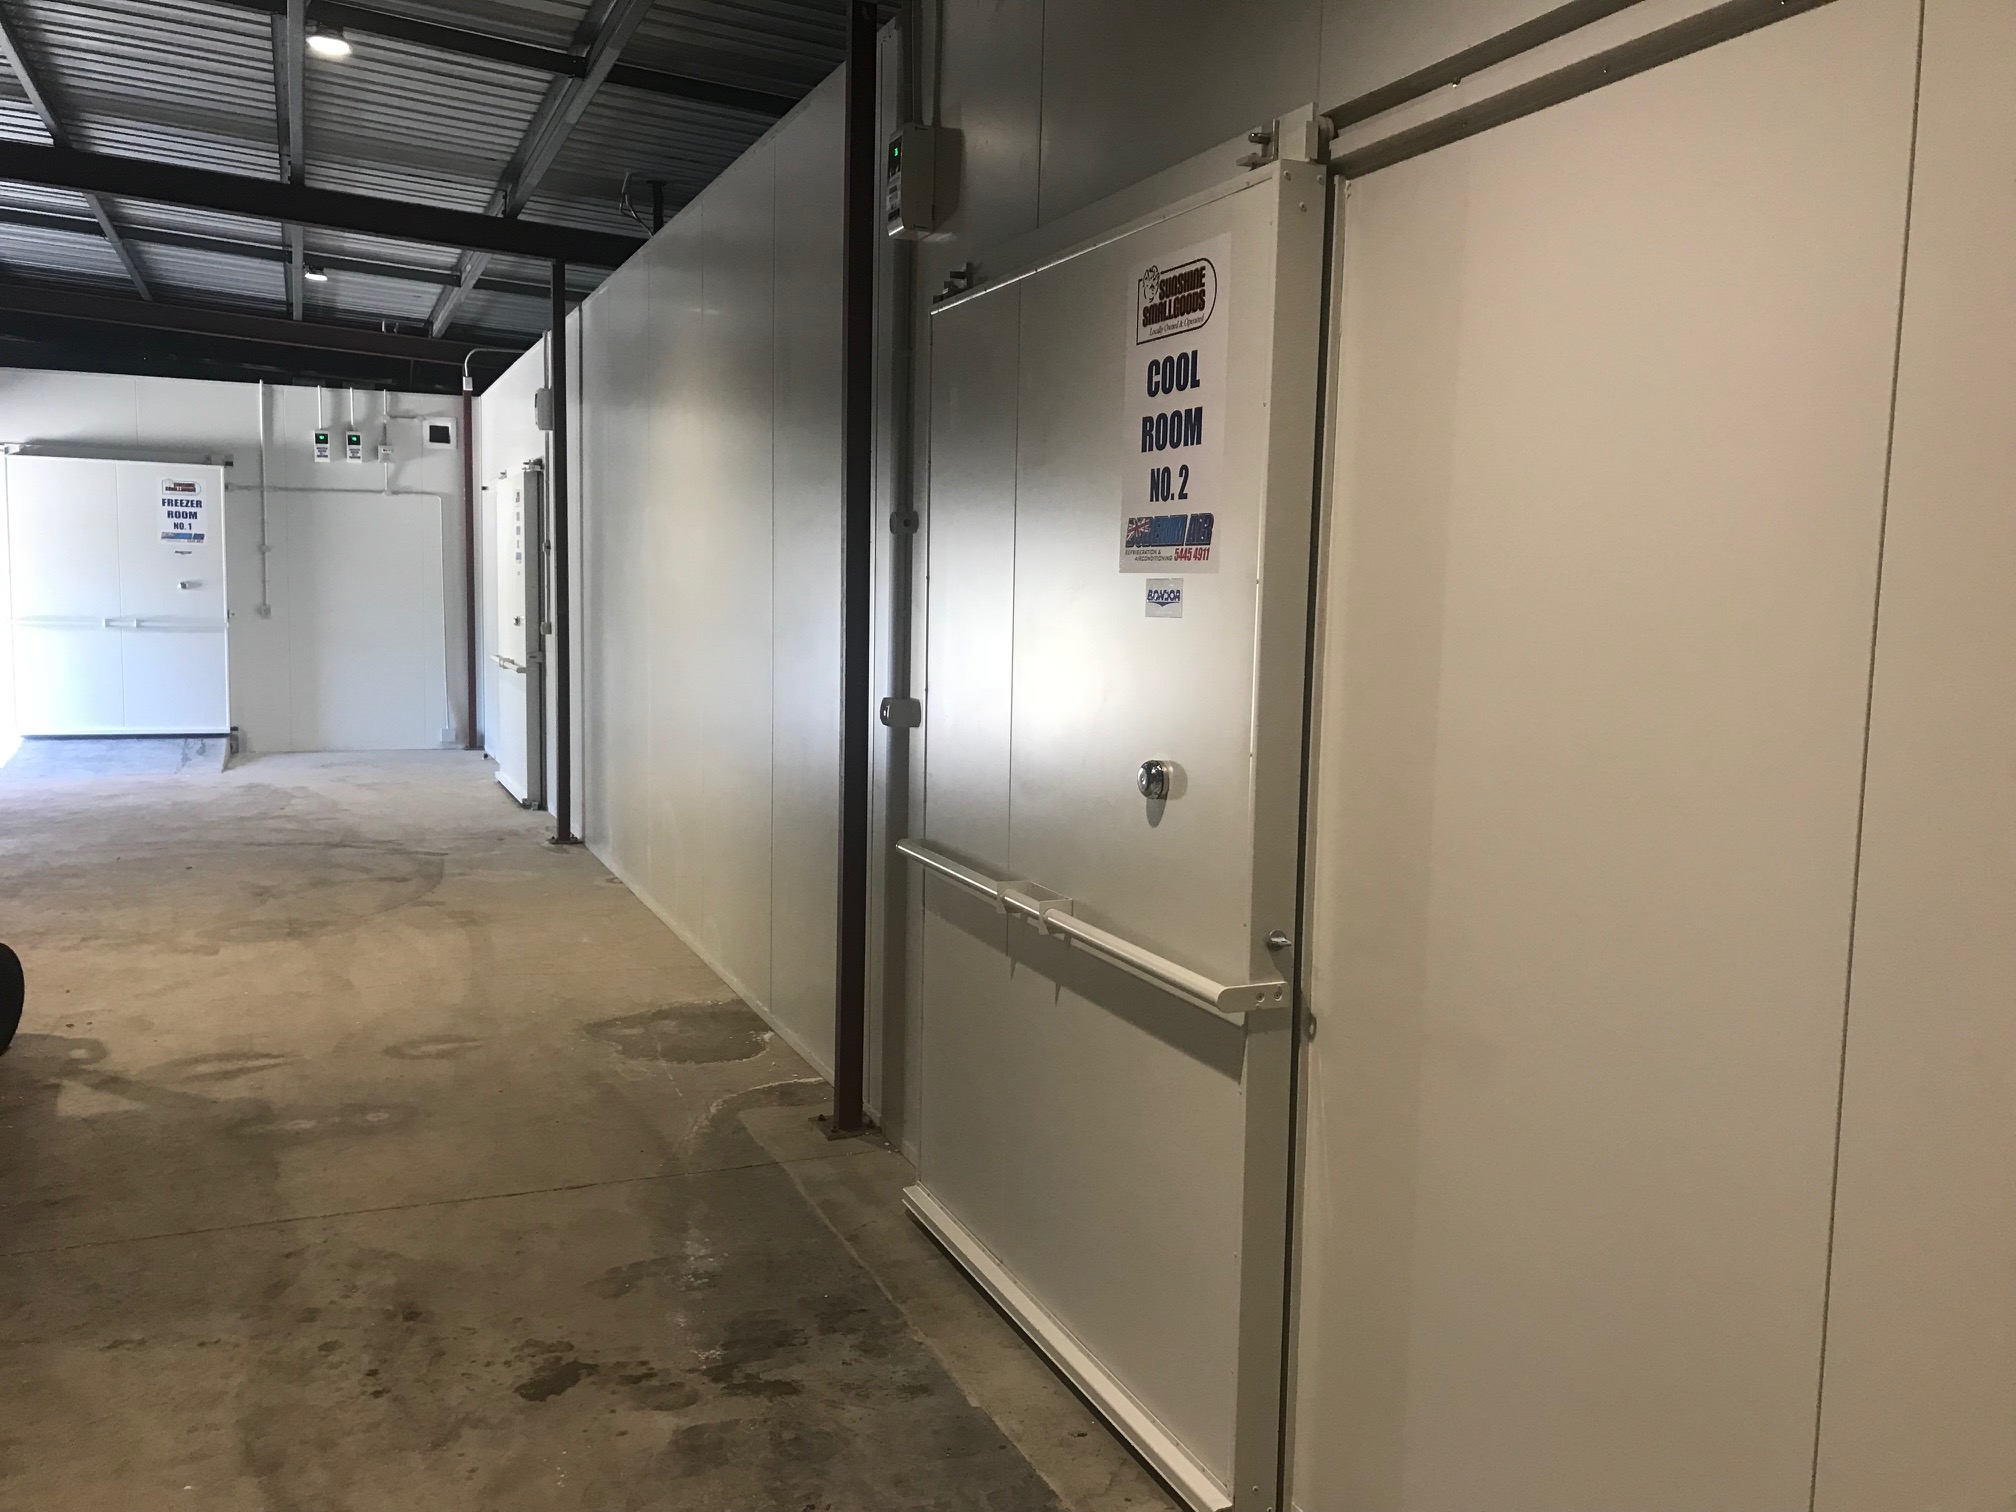 Storage Units Sunshine Coast Sunshine Small Goods Cold Room Build Buderim Air